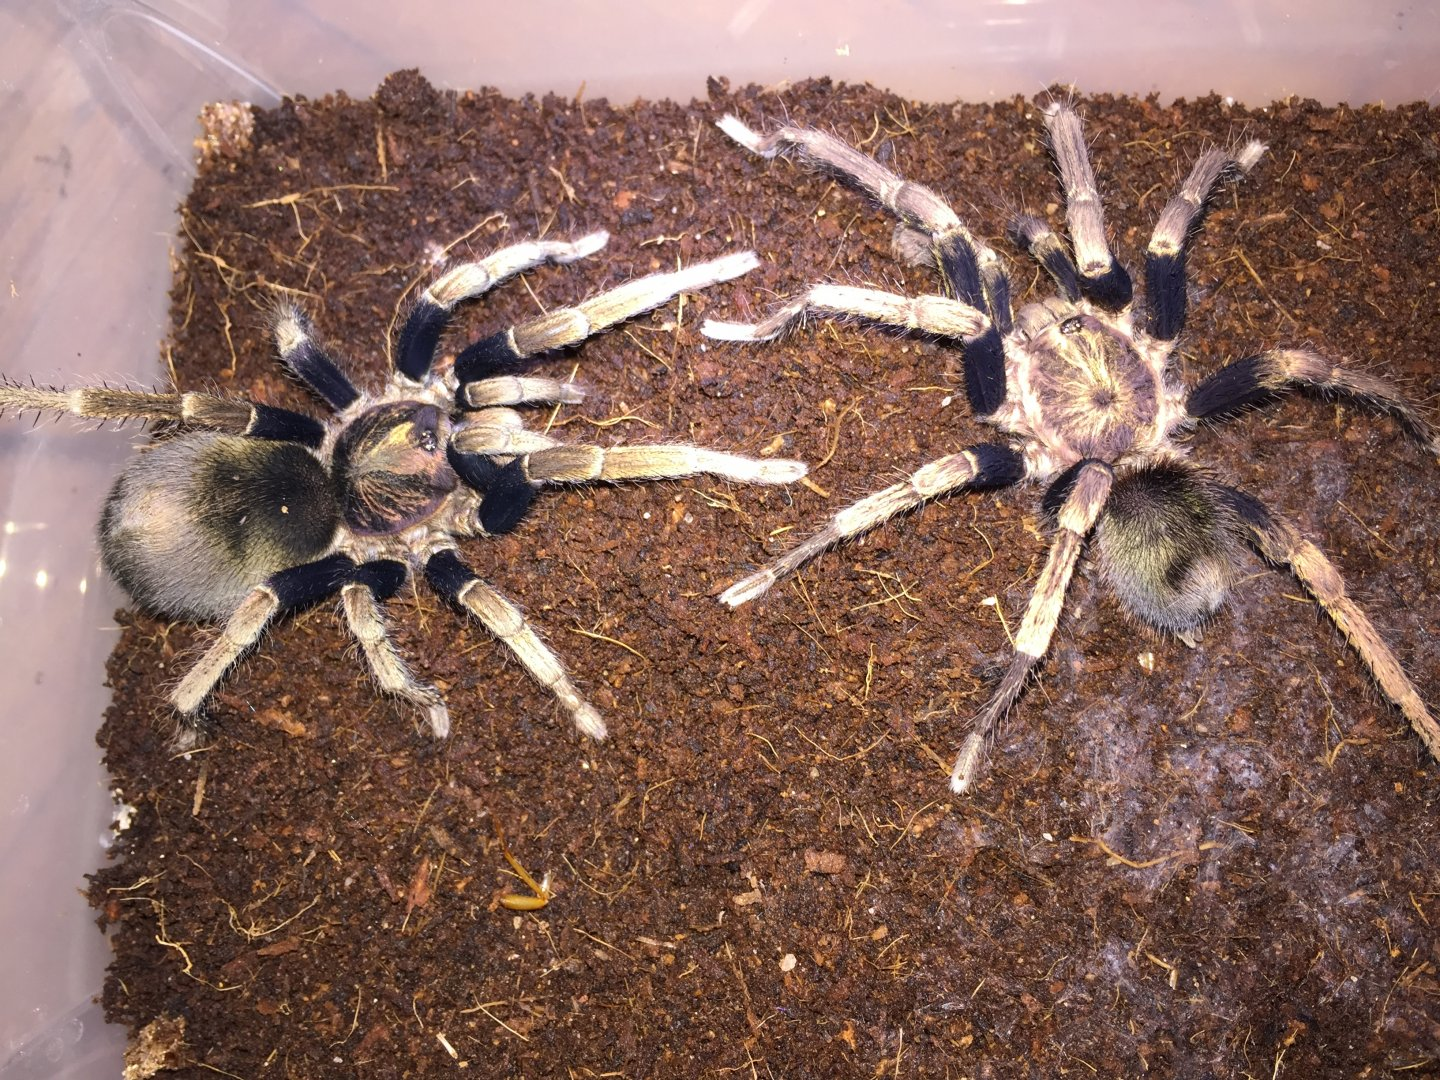 Cyclosternum sp. machalla pair